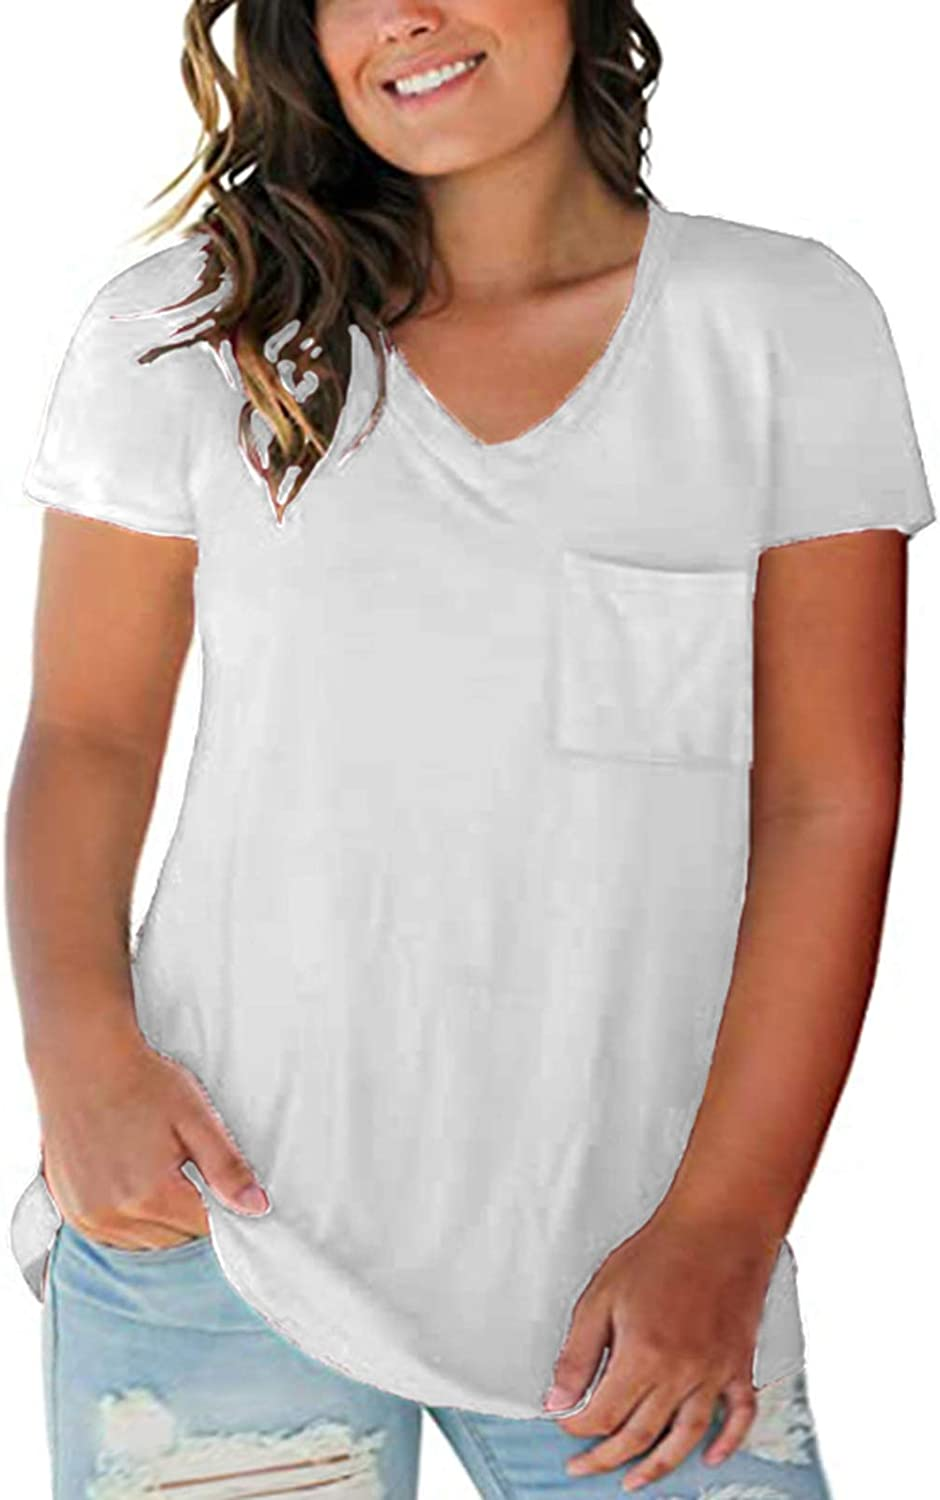 Pangxiannv Womens Short Sleeve Round Neck T Shirt Plus-Size Tunic Summer Tops Casual Loose Fitted Graphic Tees